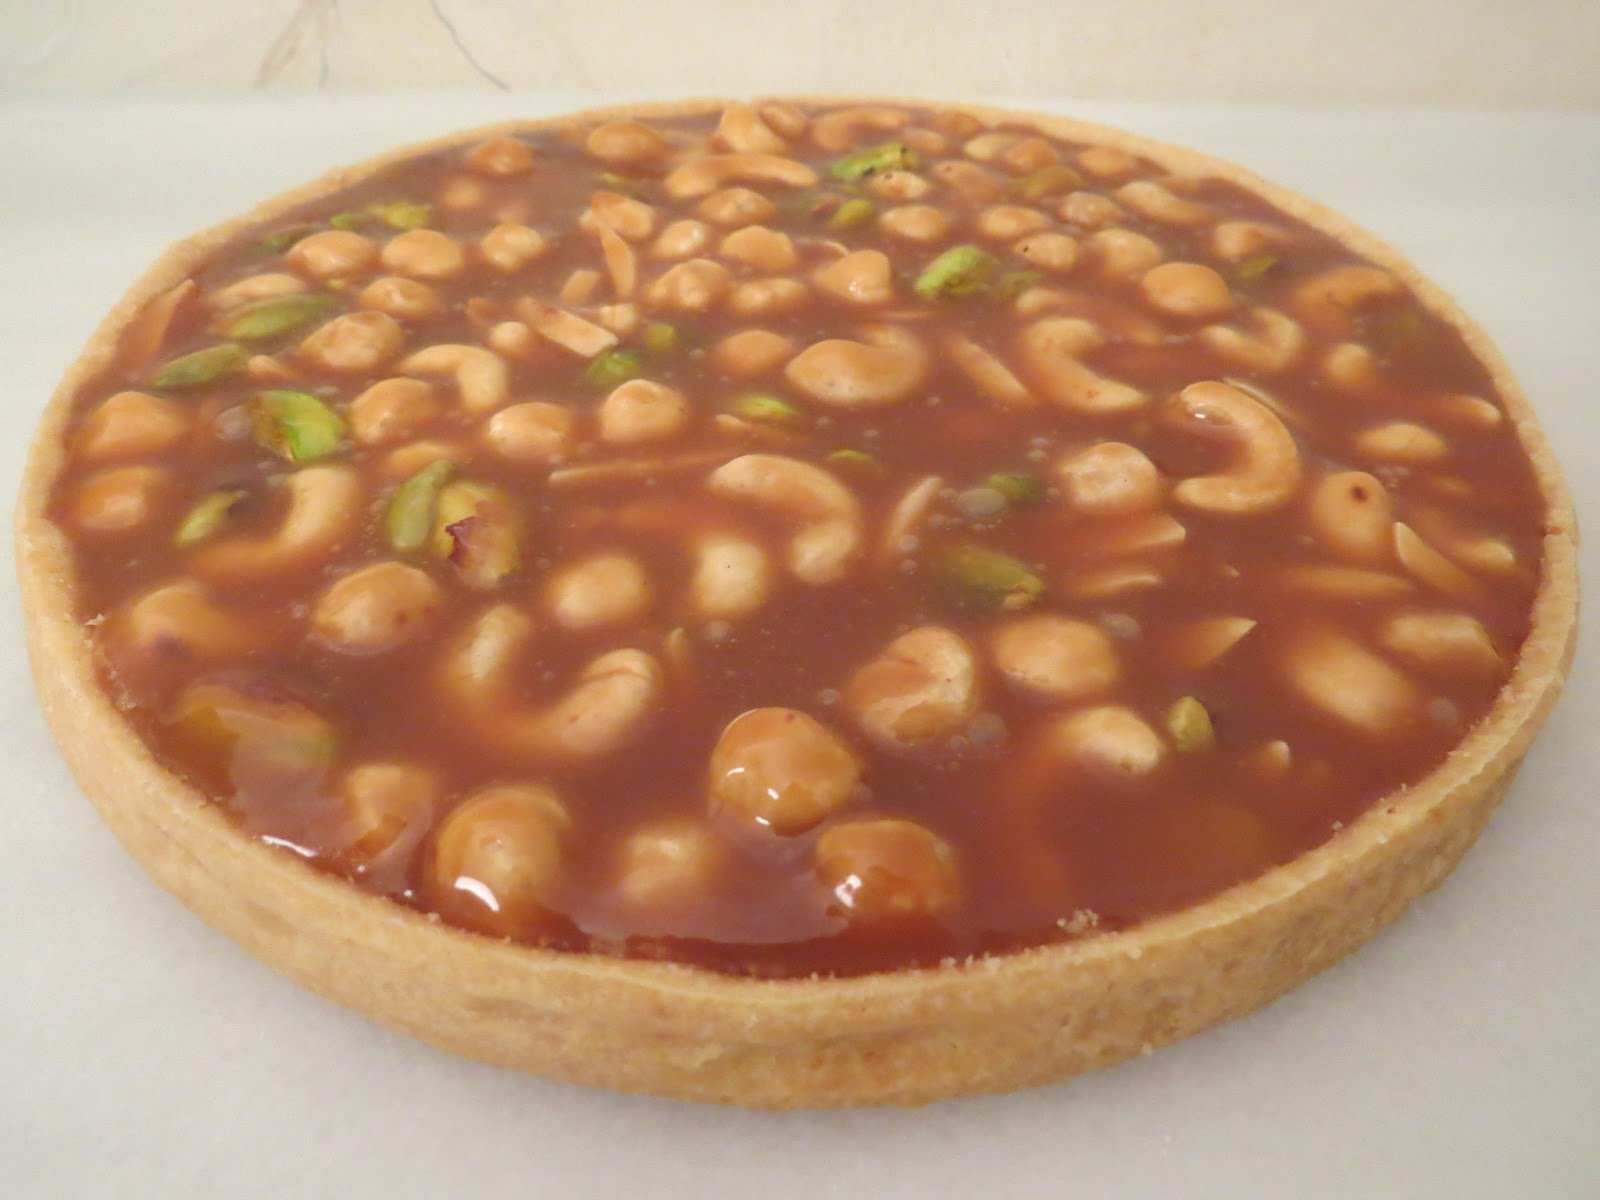 Bouchon Bakery Book Project: Caramel Nut Tart